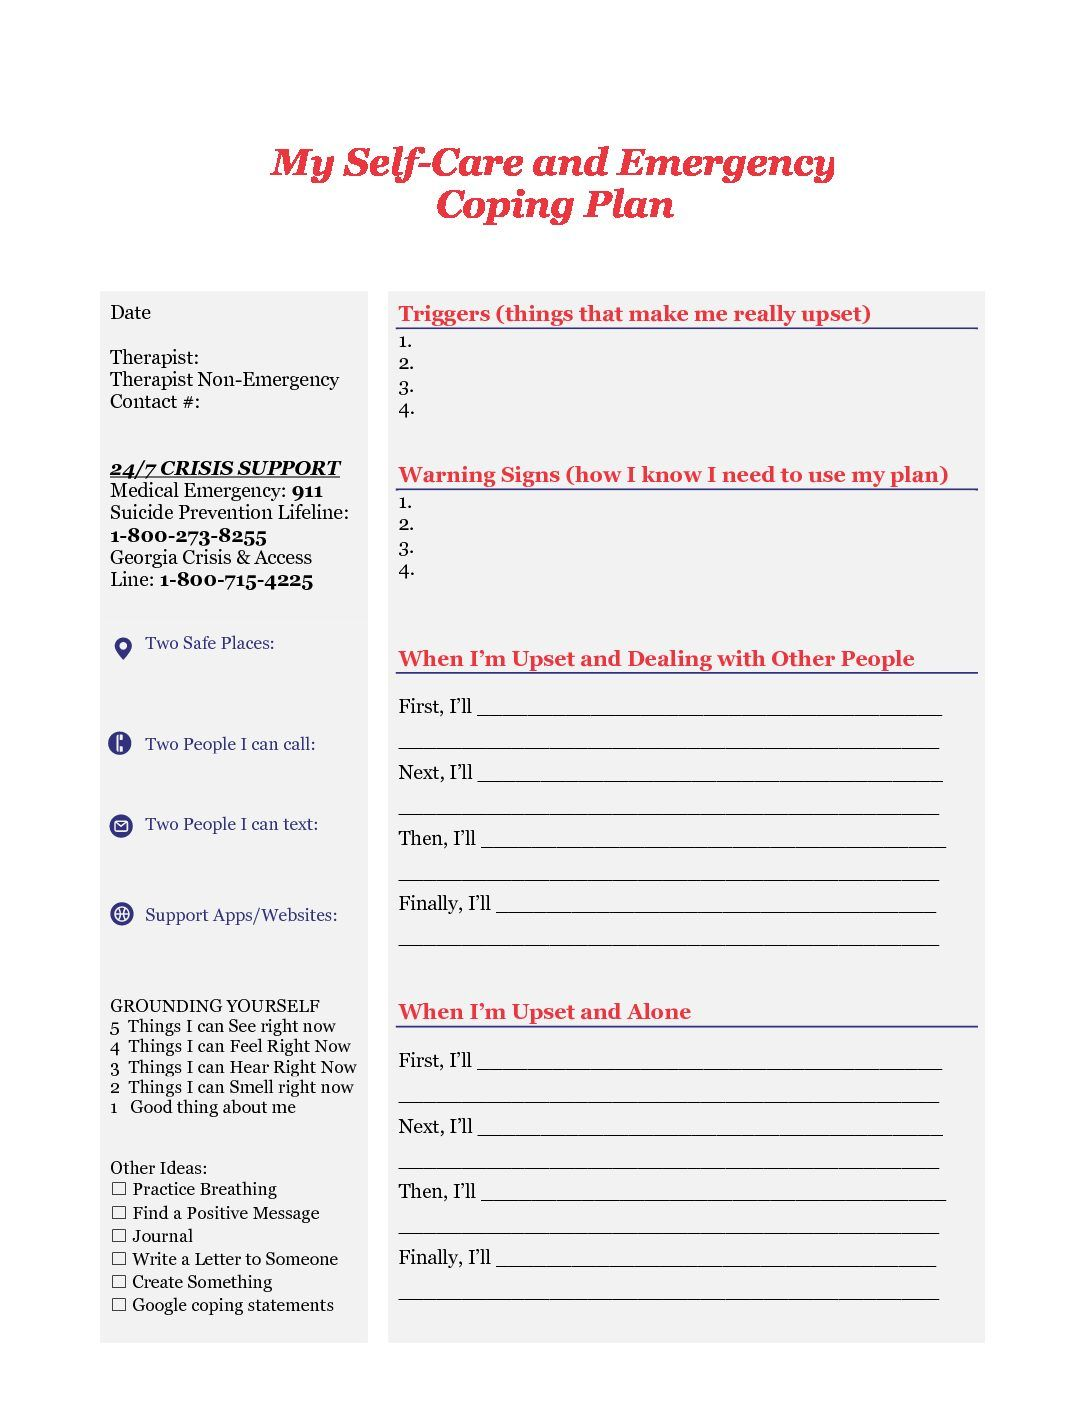 Safety Self Care Plan Therapy Worksheets Coping Skills Counseling Worksheets Mental health crisis plan template